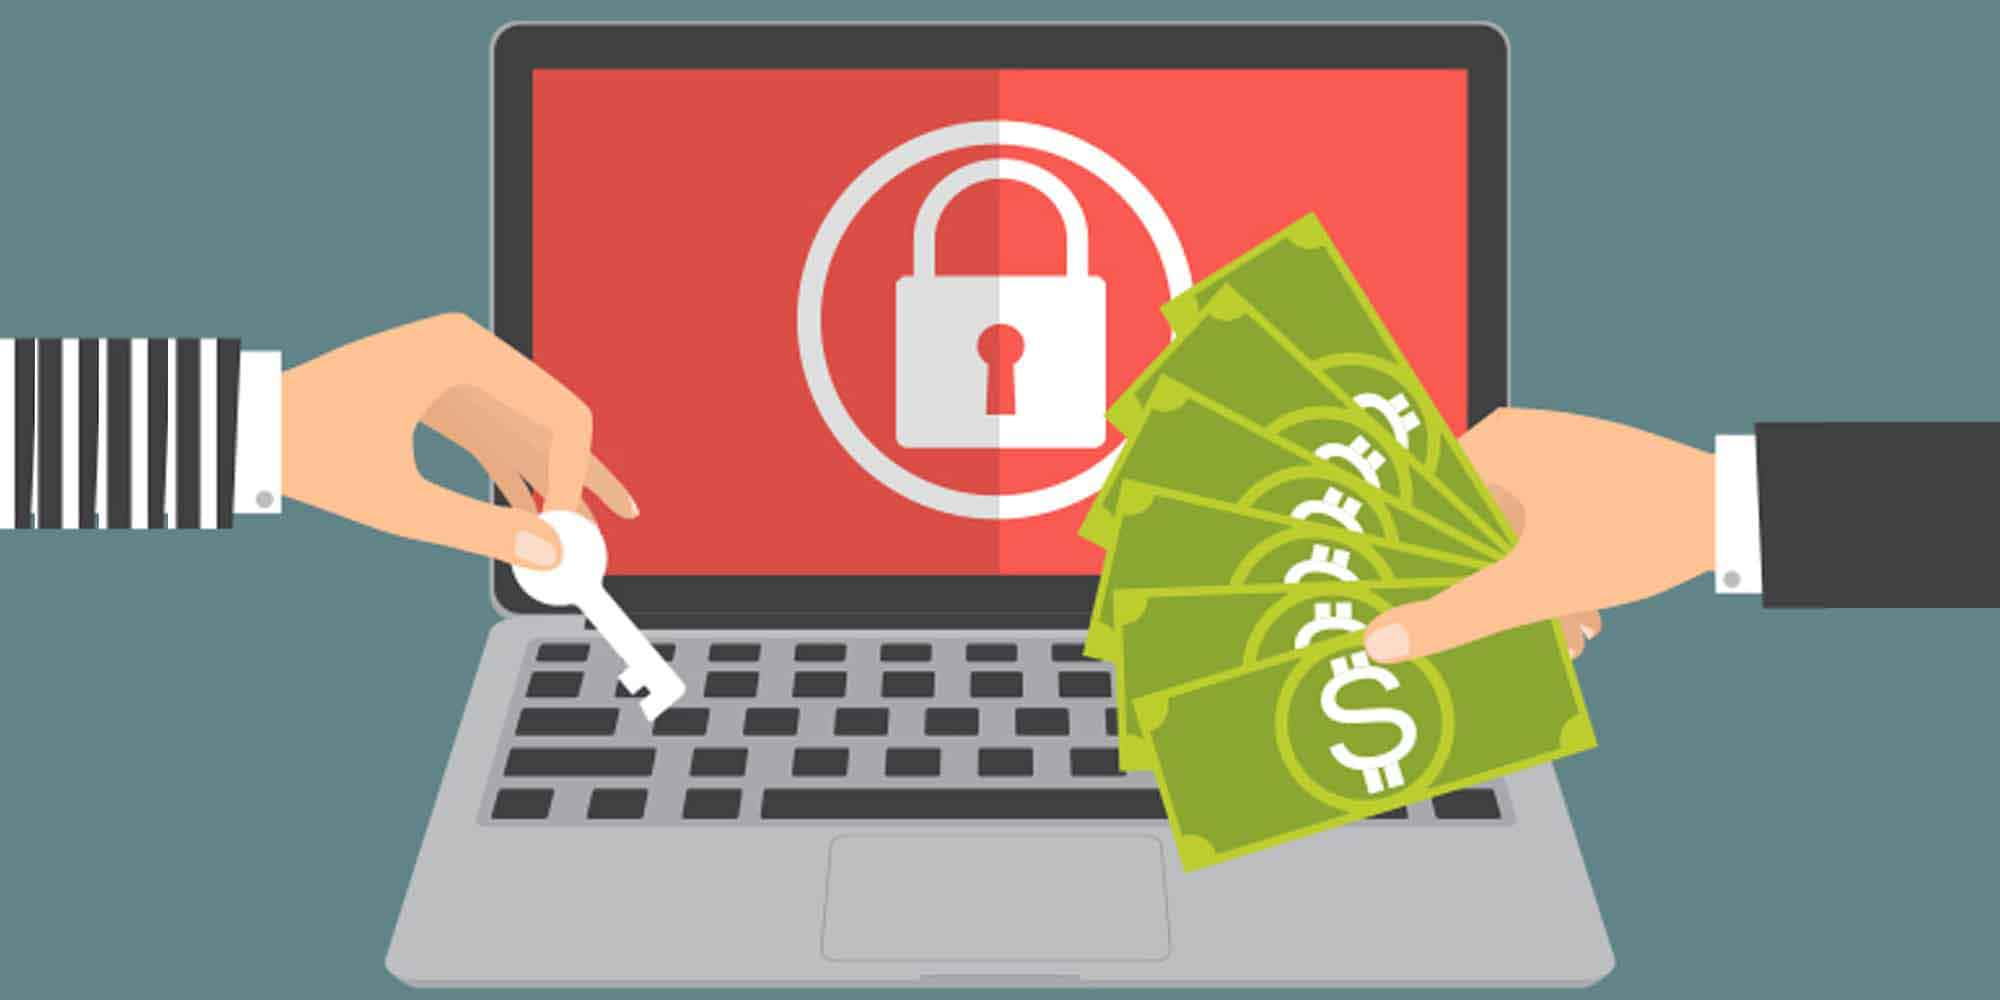 Don't Get Held Hostage: Innovations Address Ransomware